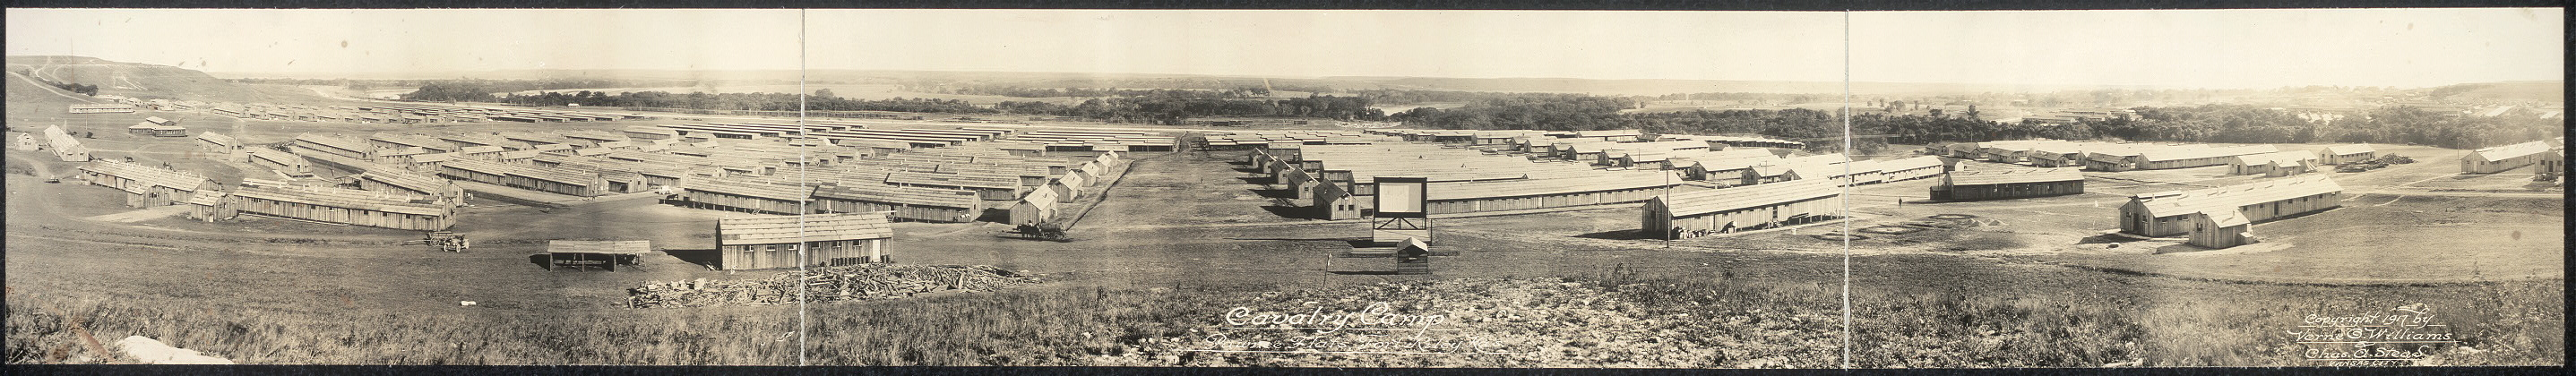 Williams, V. O. & Stead, C. A. (ca. 1917) Cavalry Camp, Pawnee Flats, Fort Riley, Kas. Fort Riley Kansas United States, ca. 1917. [Photograph] Retrieved from the Library of Congress, https://www.loc.gov/item/2007664122/.